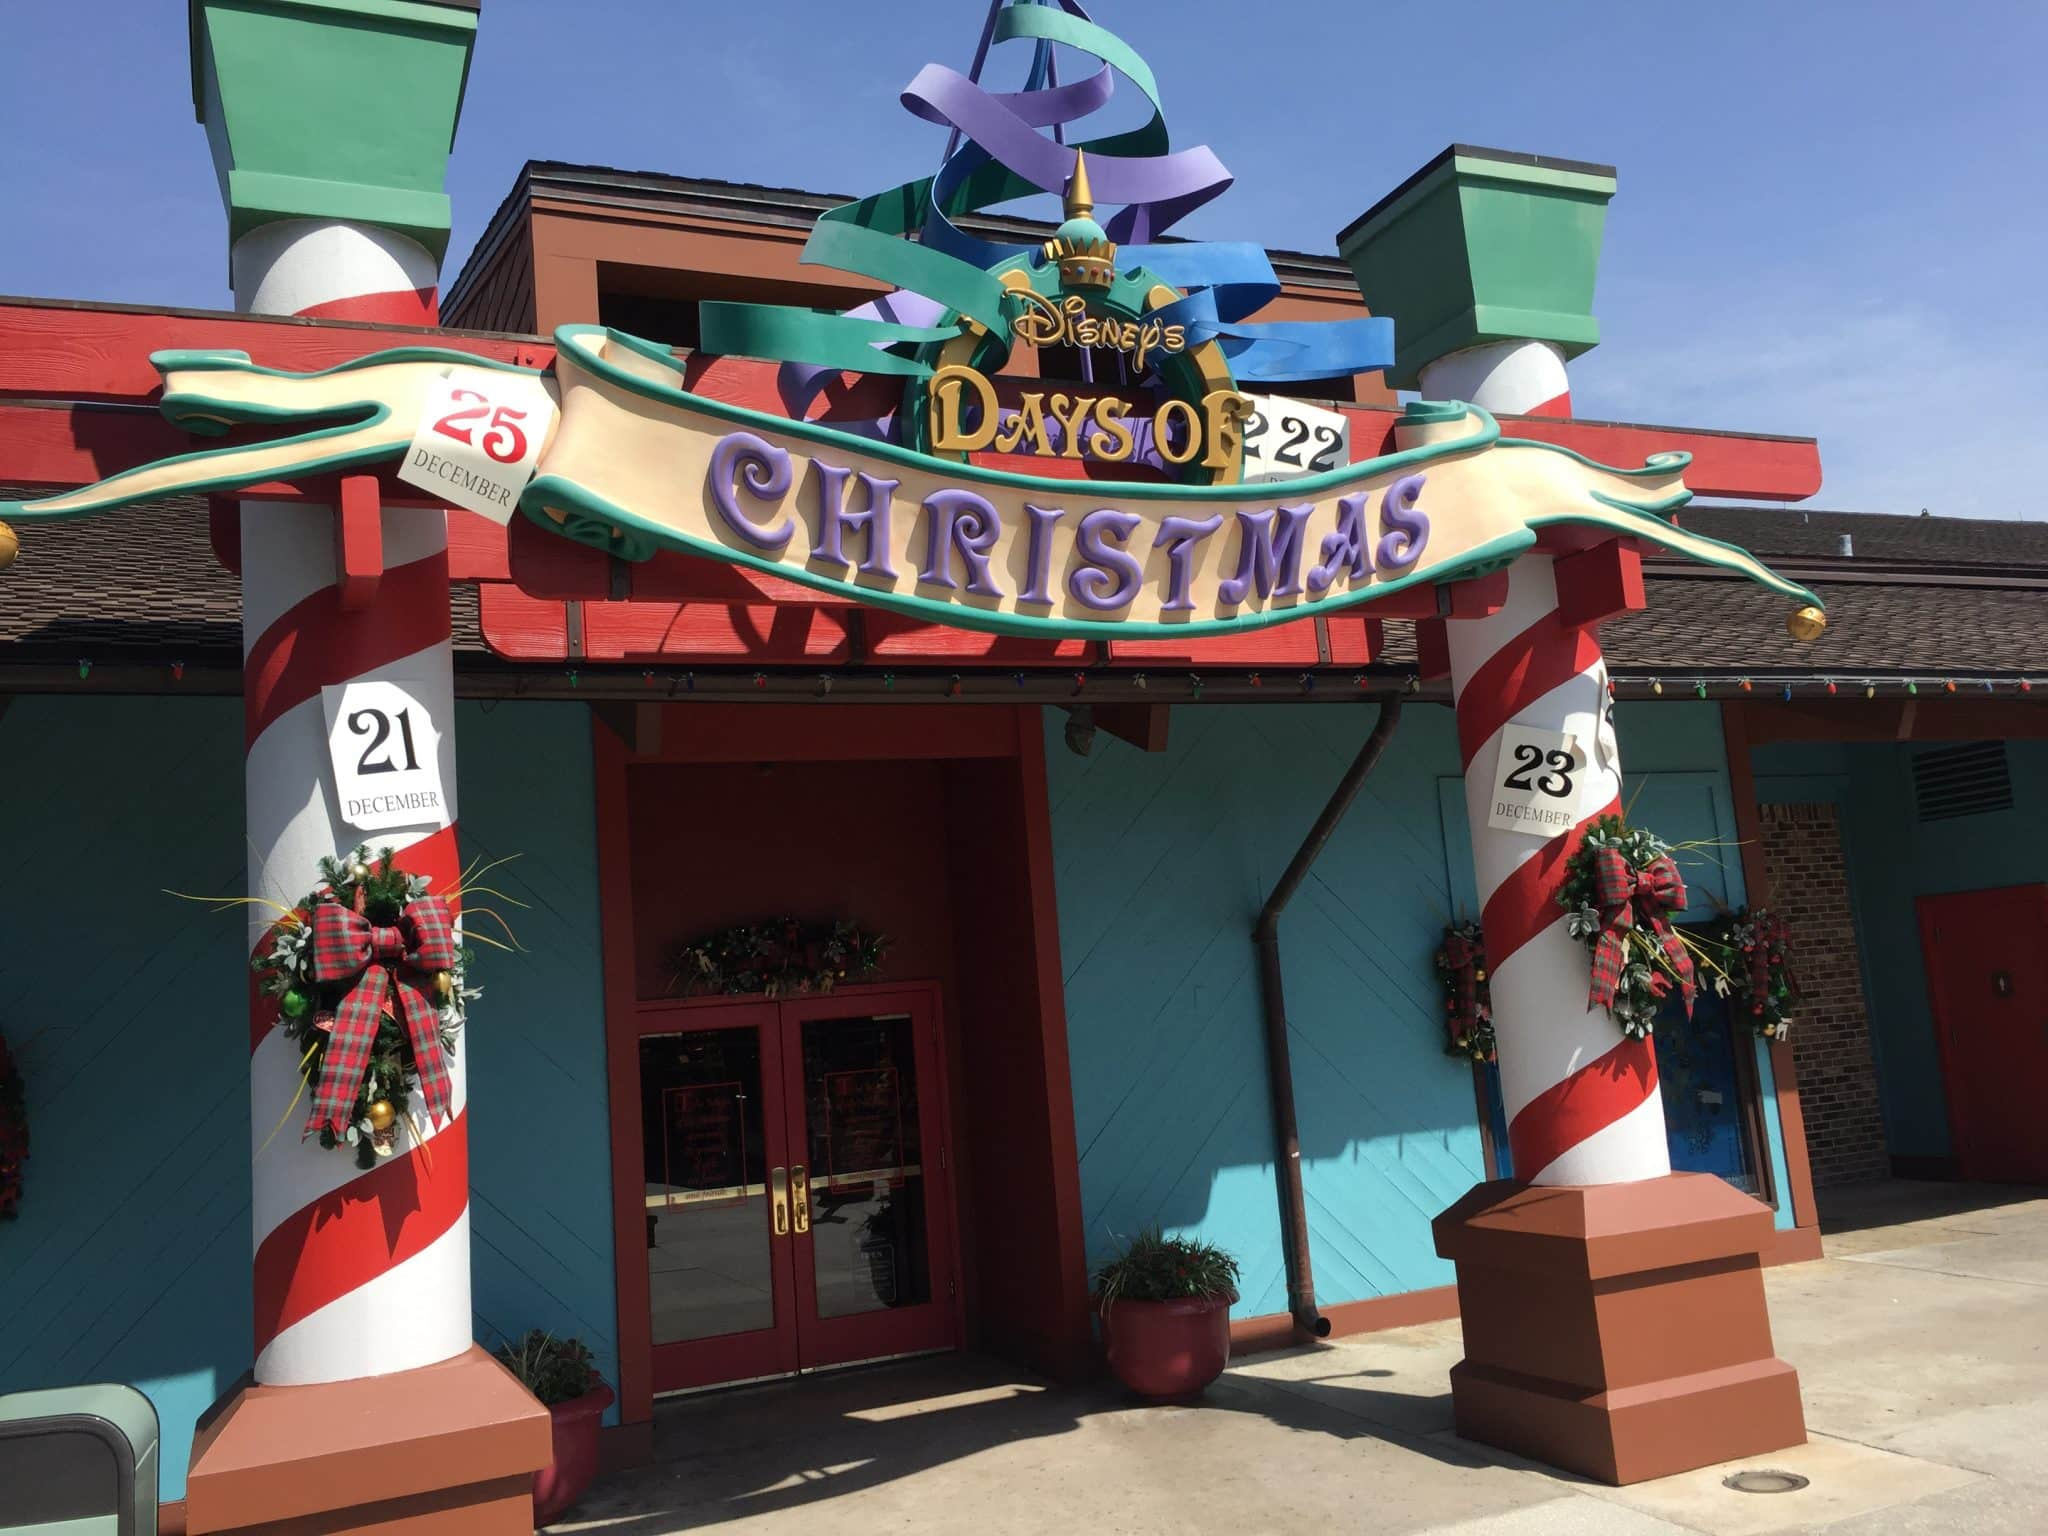 Loja Disney's Days of Christmas na Disney Springs